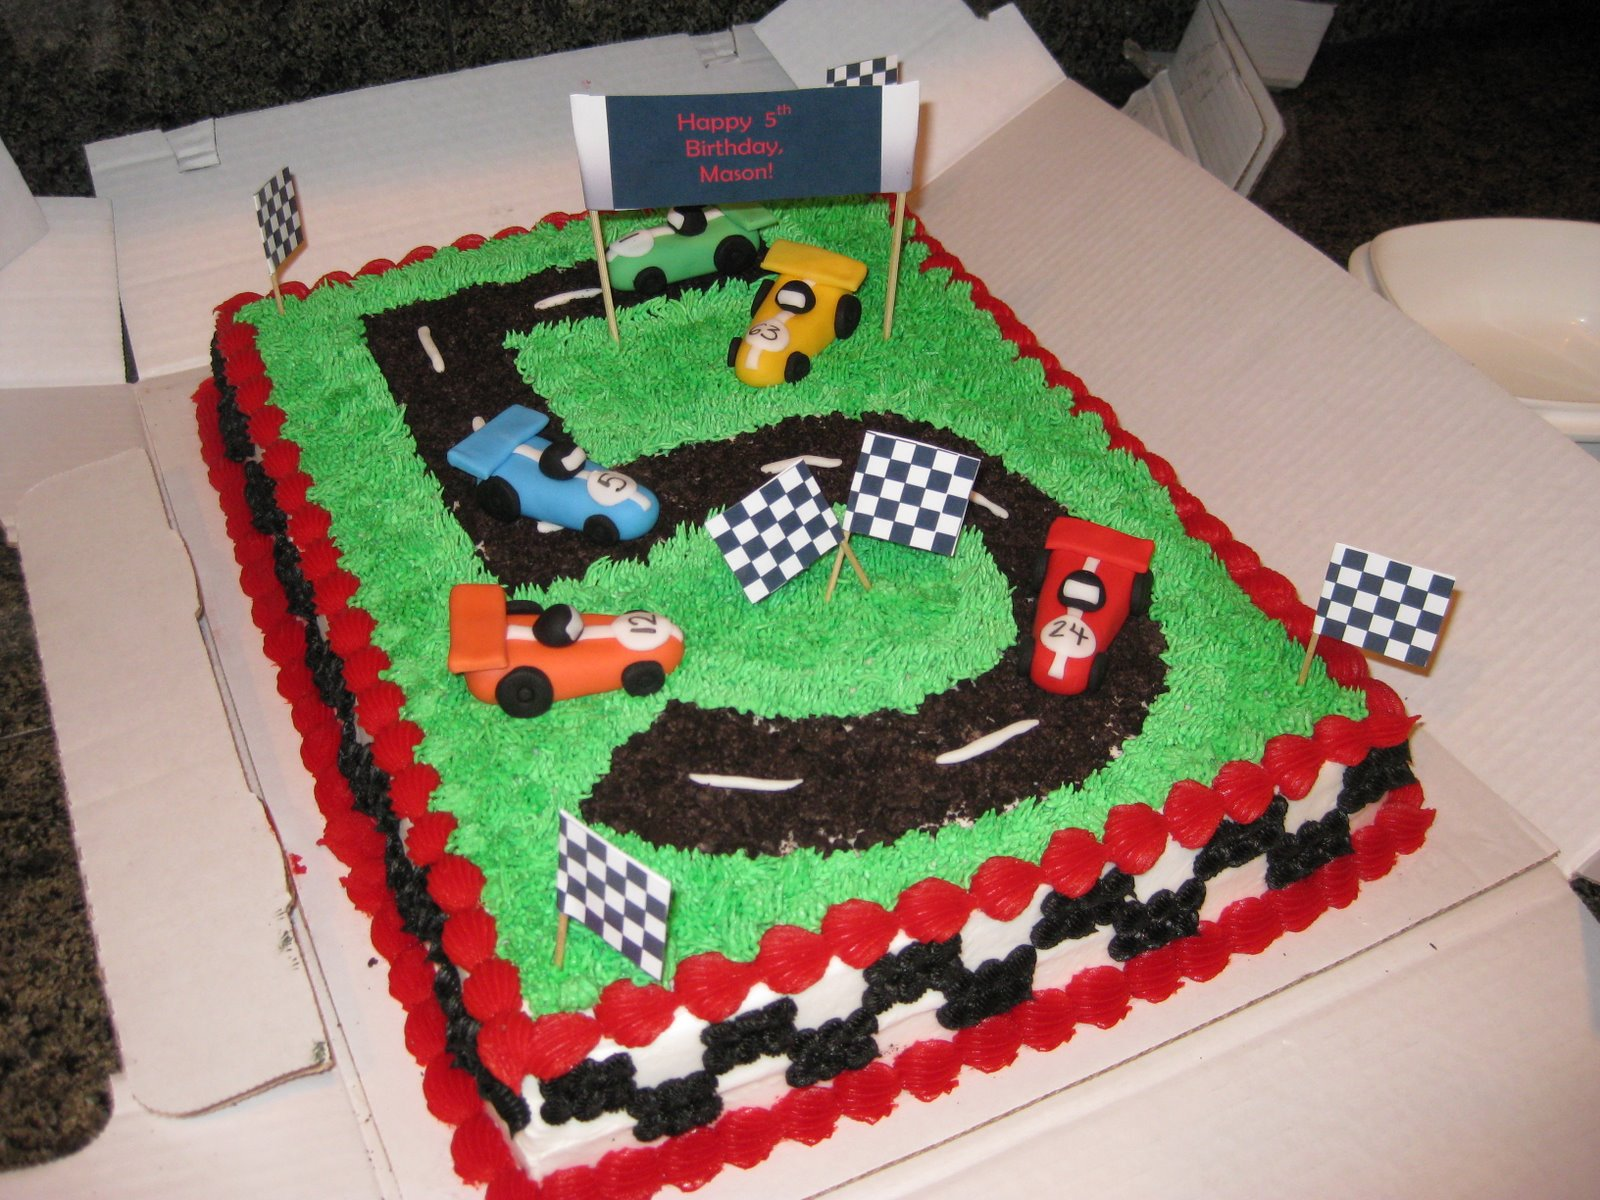 Cake Design Cars Theme : Cars cake - updated with pictures - BabyCenter